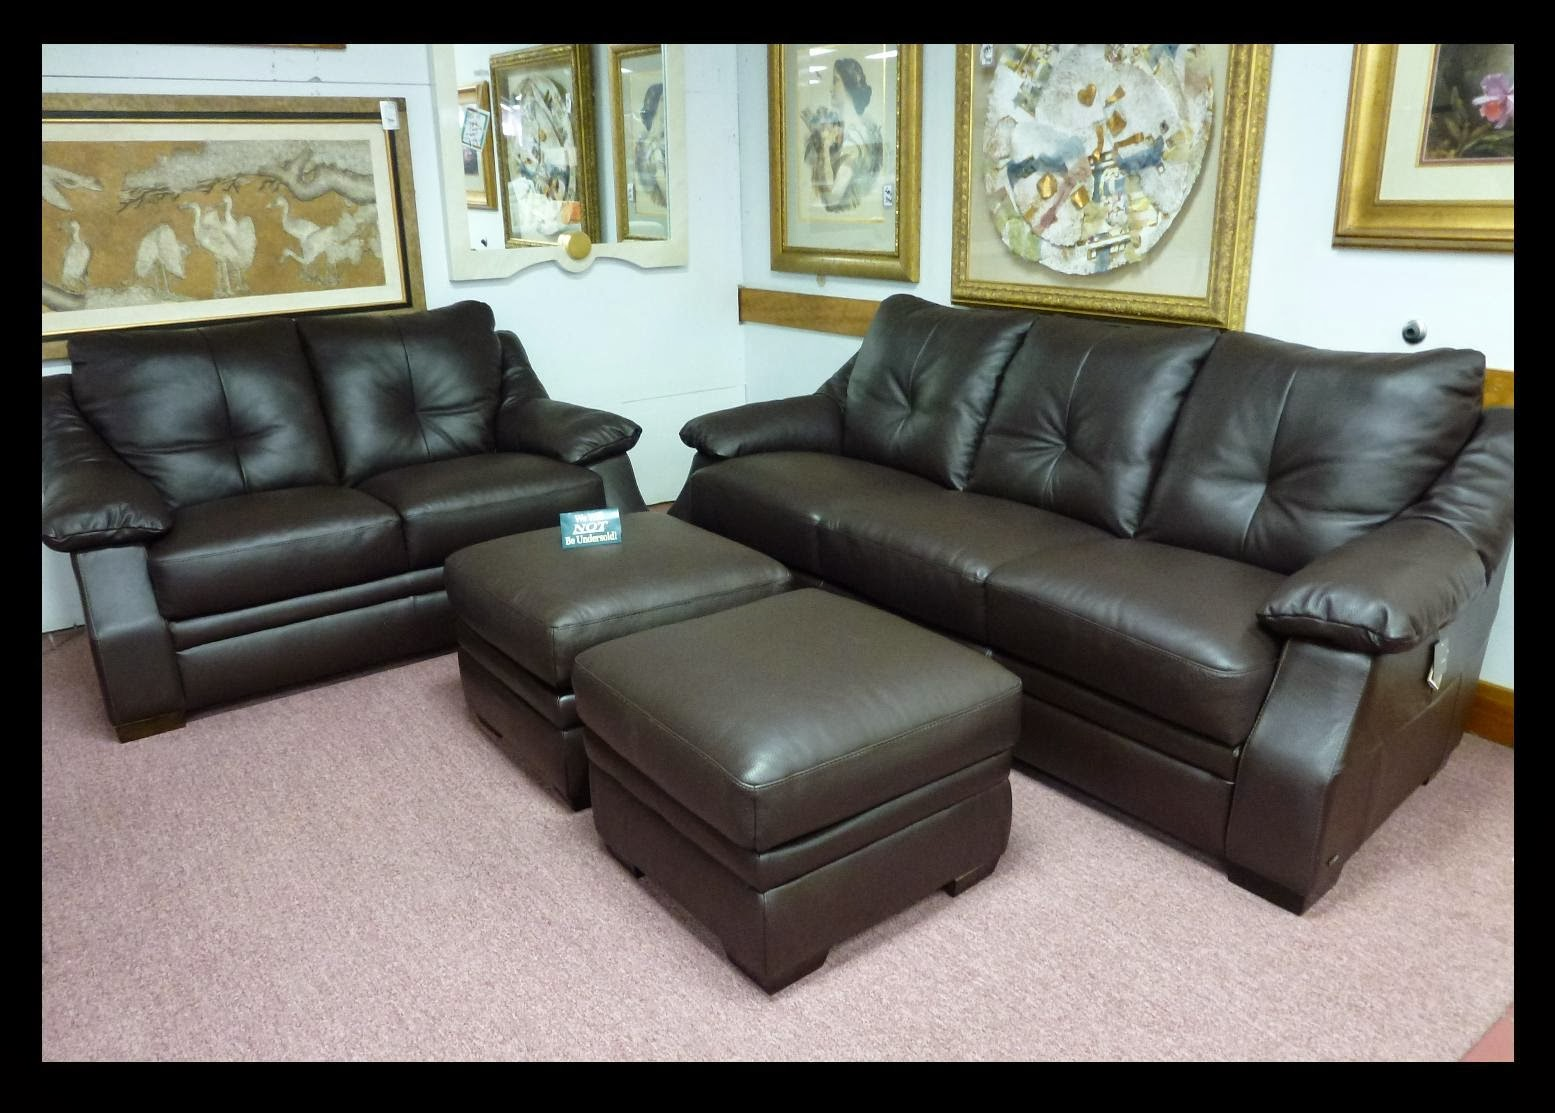 Ever wondered how to buy stock in natuzzi s.p.a? Natuzzi Leather Sofas & Sectionals by Interior Concepts ...